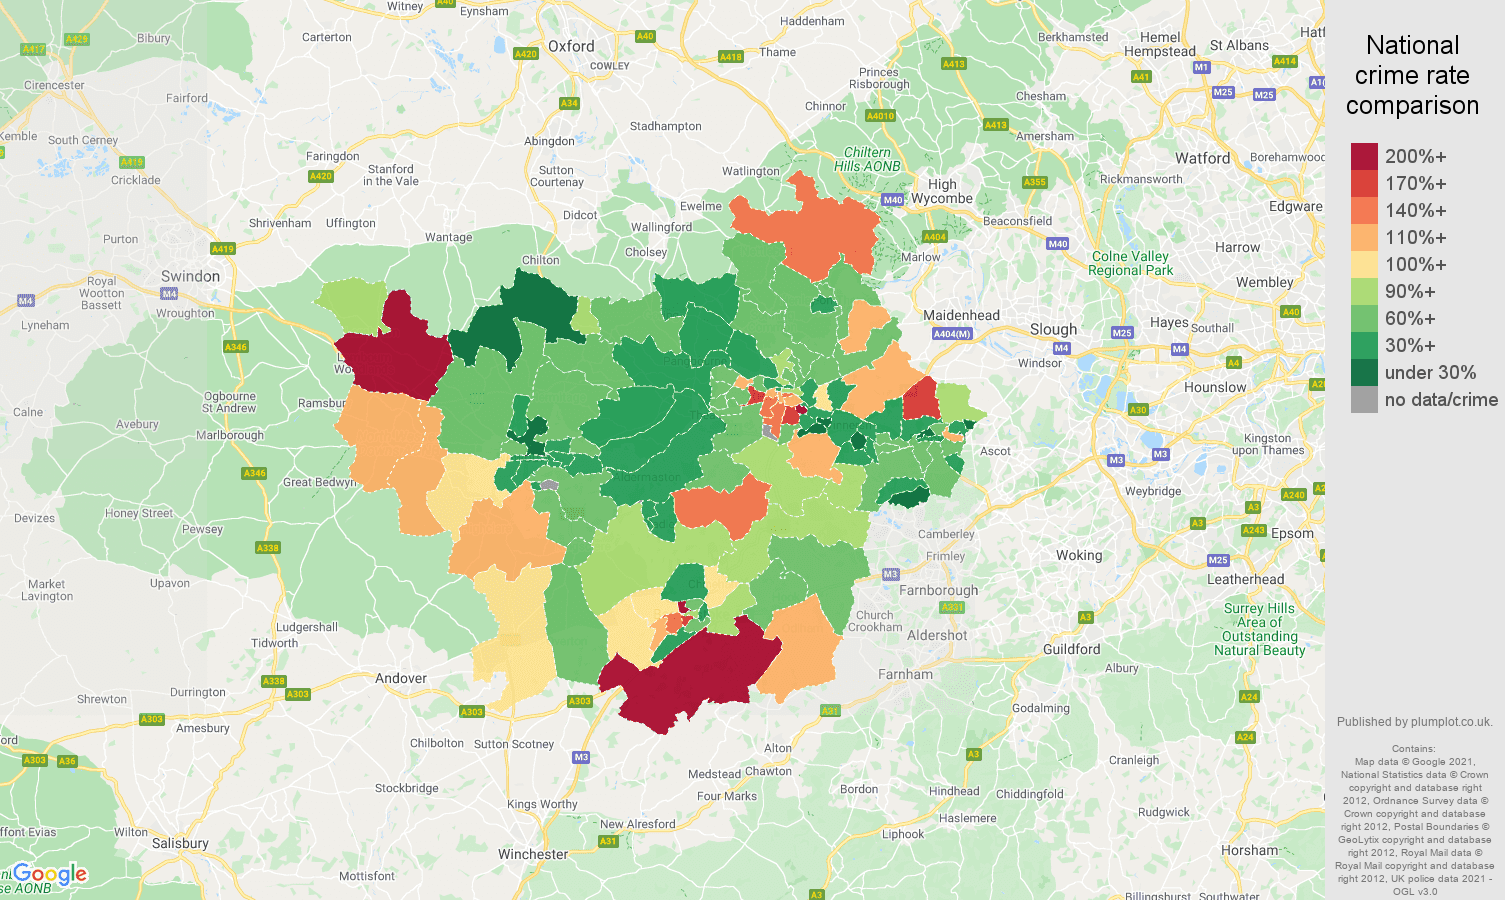 Reading burglary crime rate comparison map